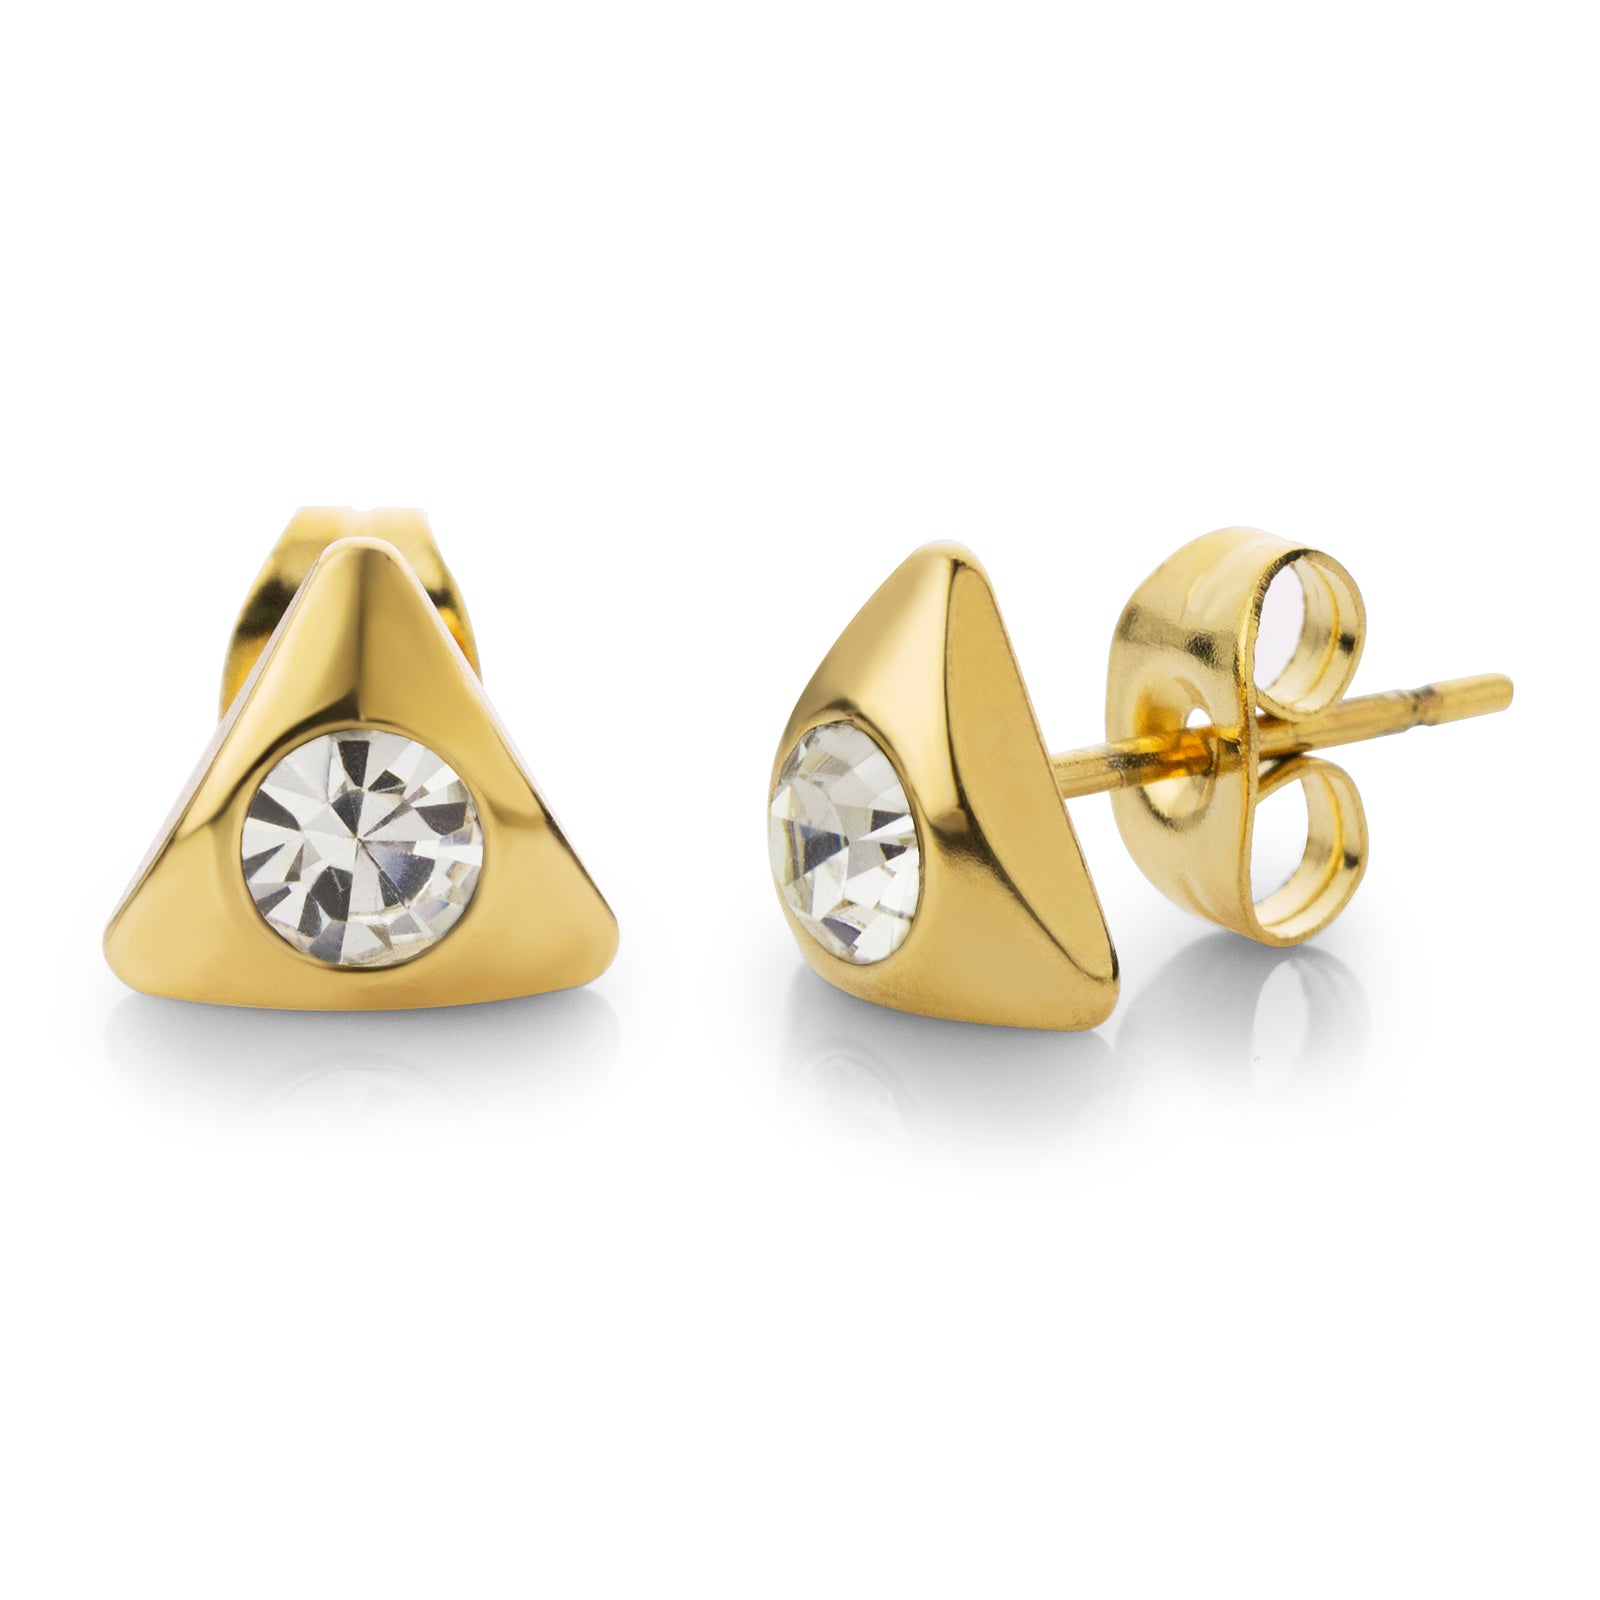 MNC-ER526-B Steel & Gold Triangle Stud Earrings